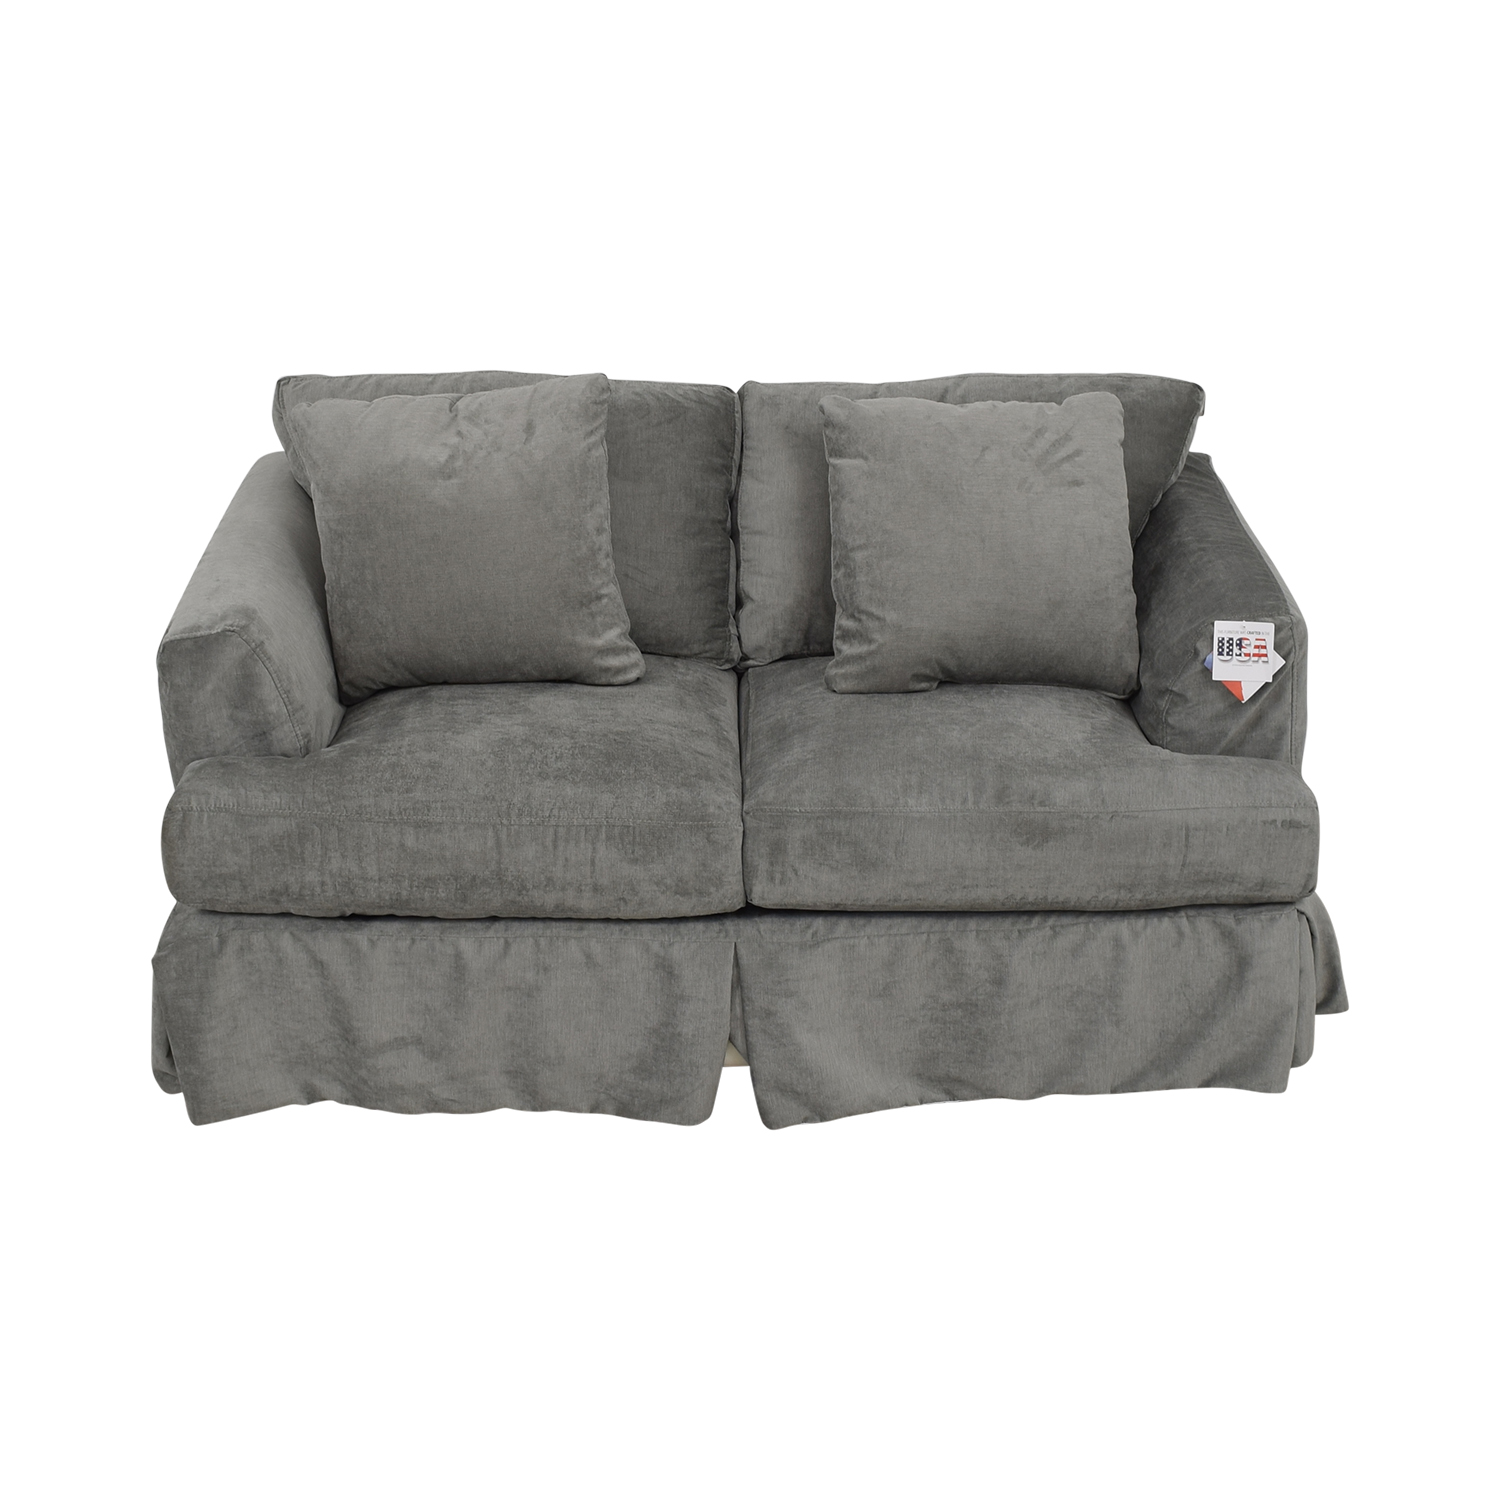 Wayfair Grey Upholstered Two-Cushion Loveseat Wayfair